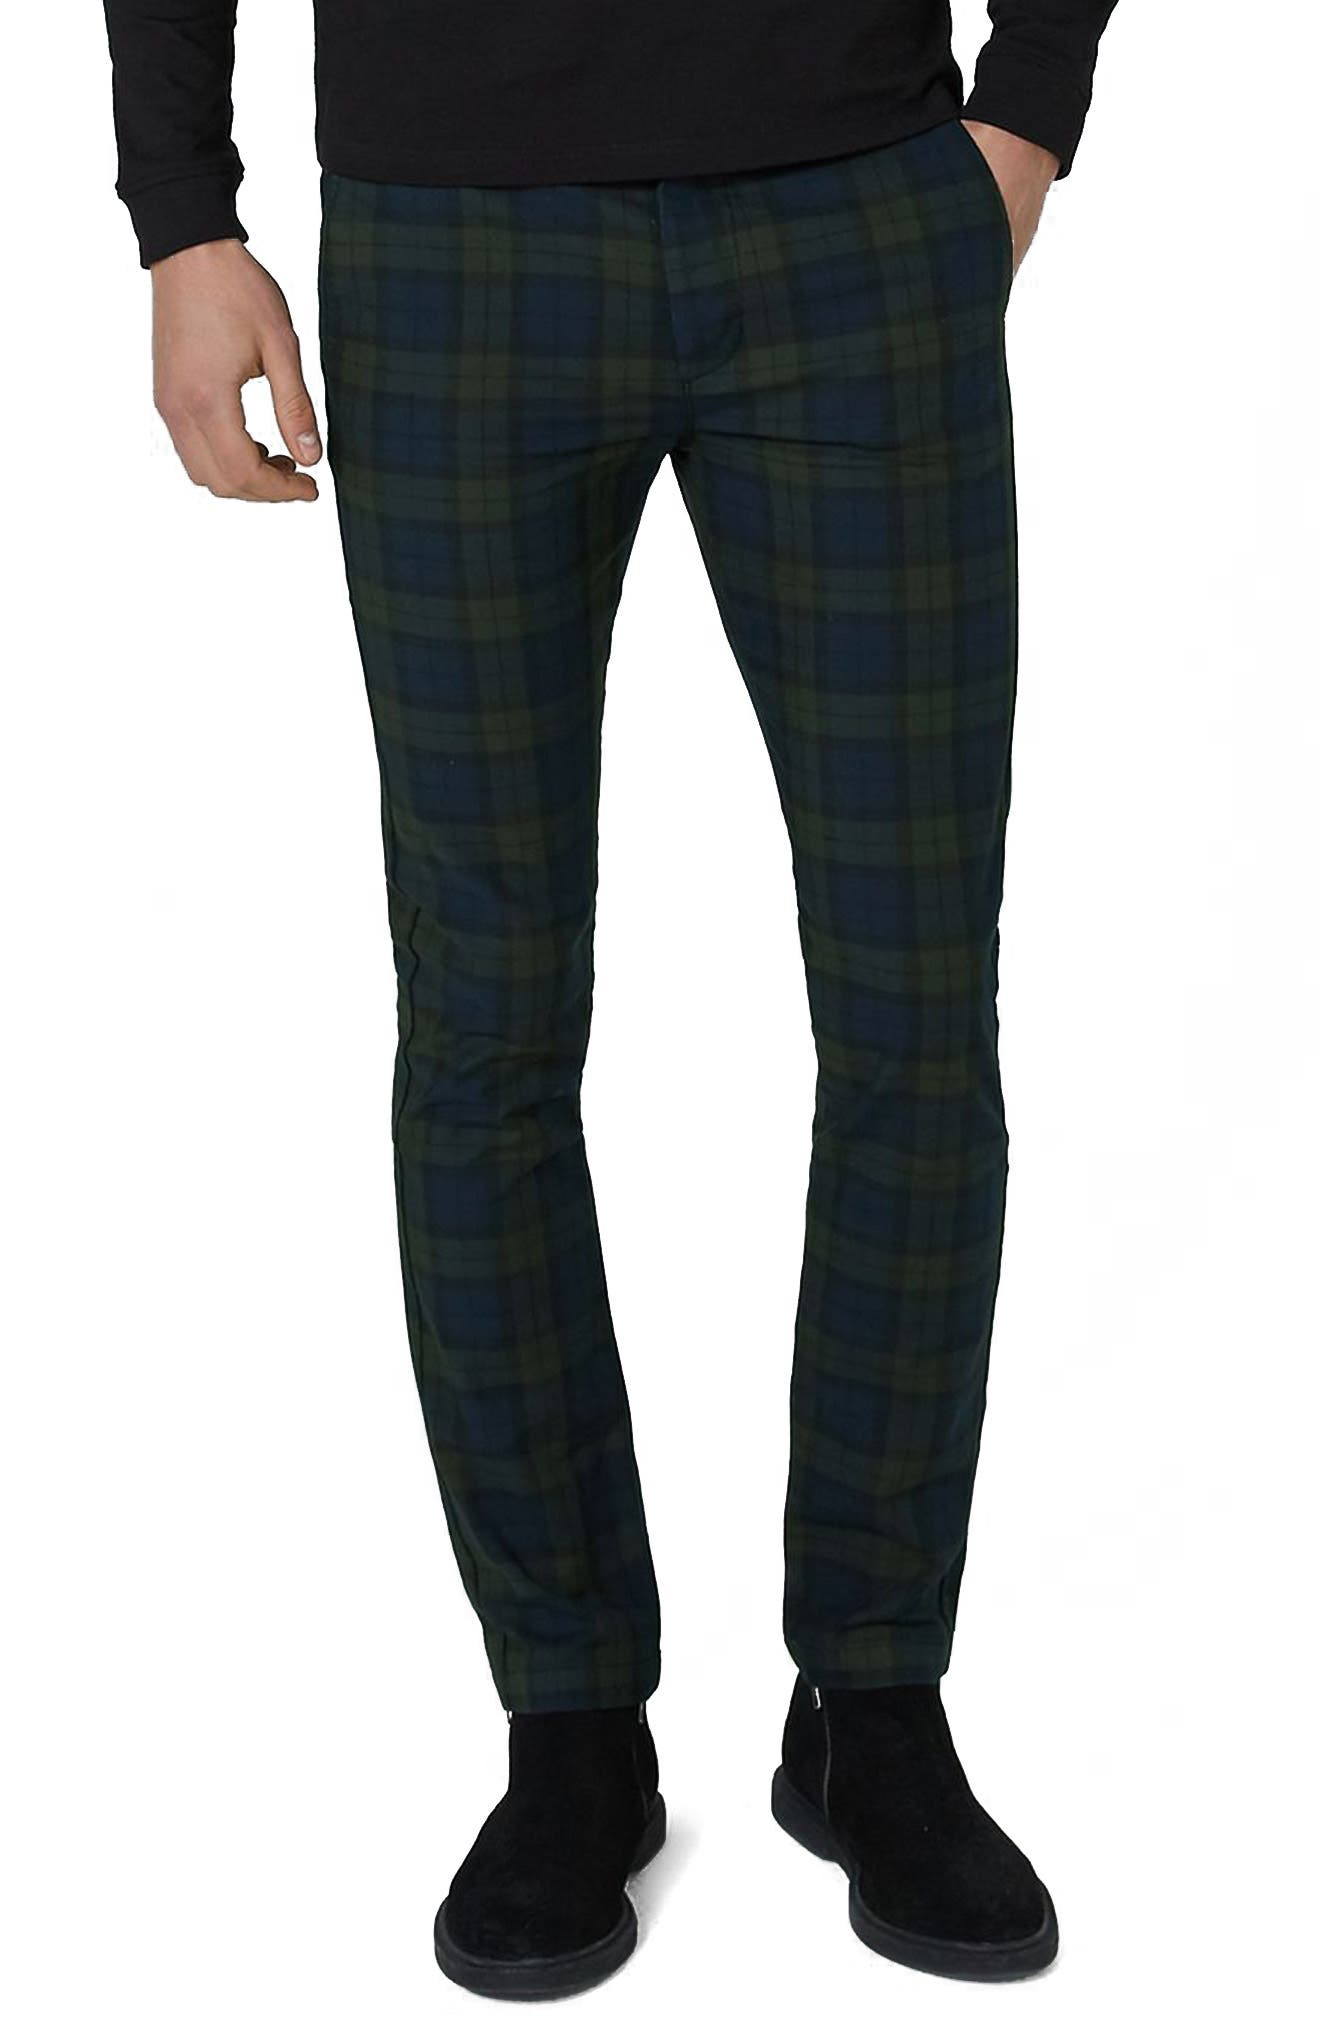 Topman Black Watch Check Stretch Skinny Fit Trousers